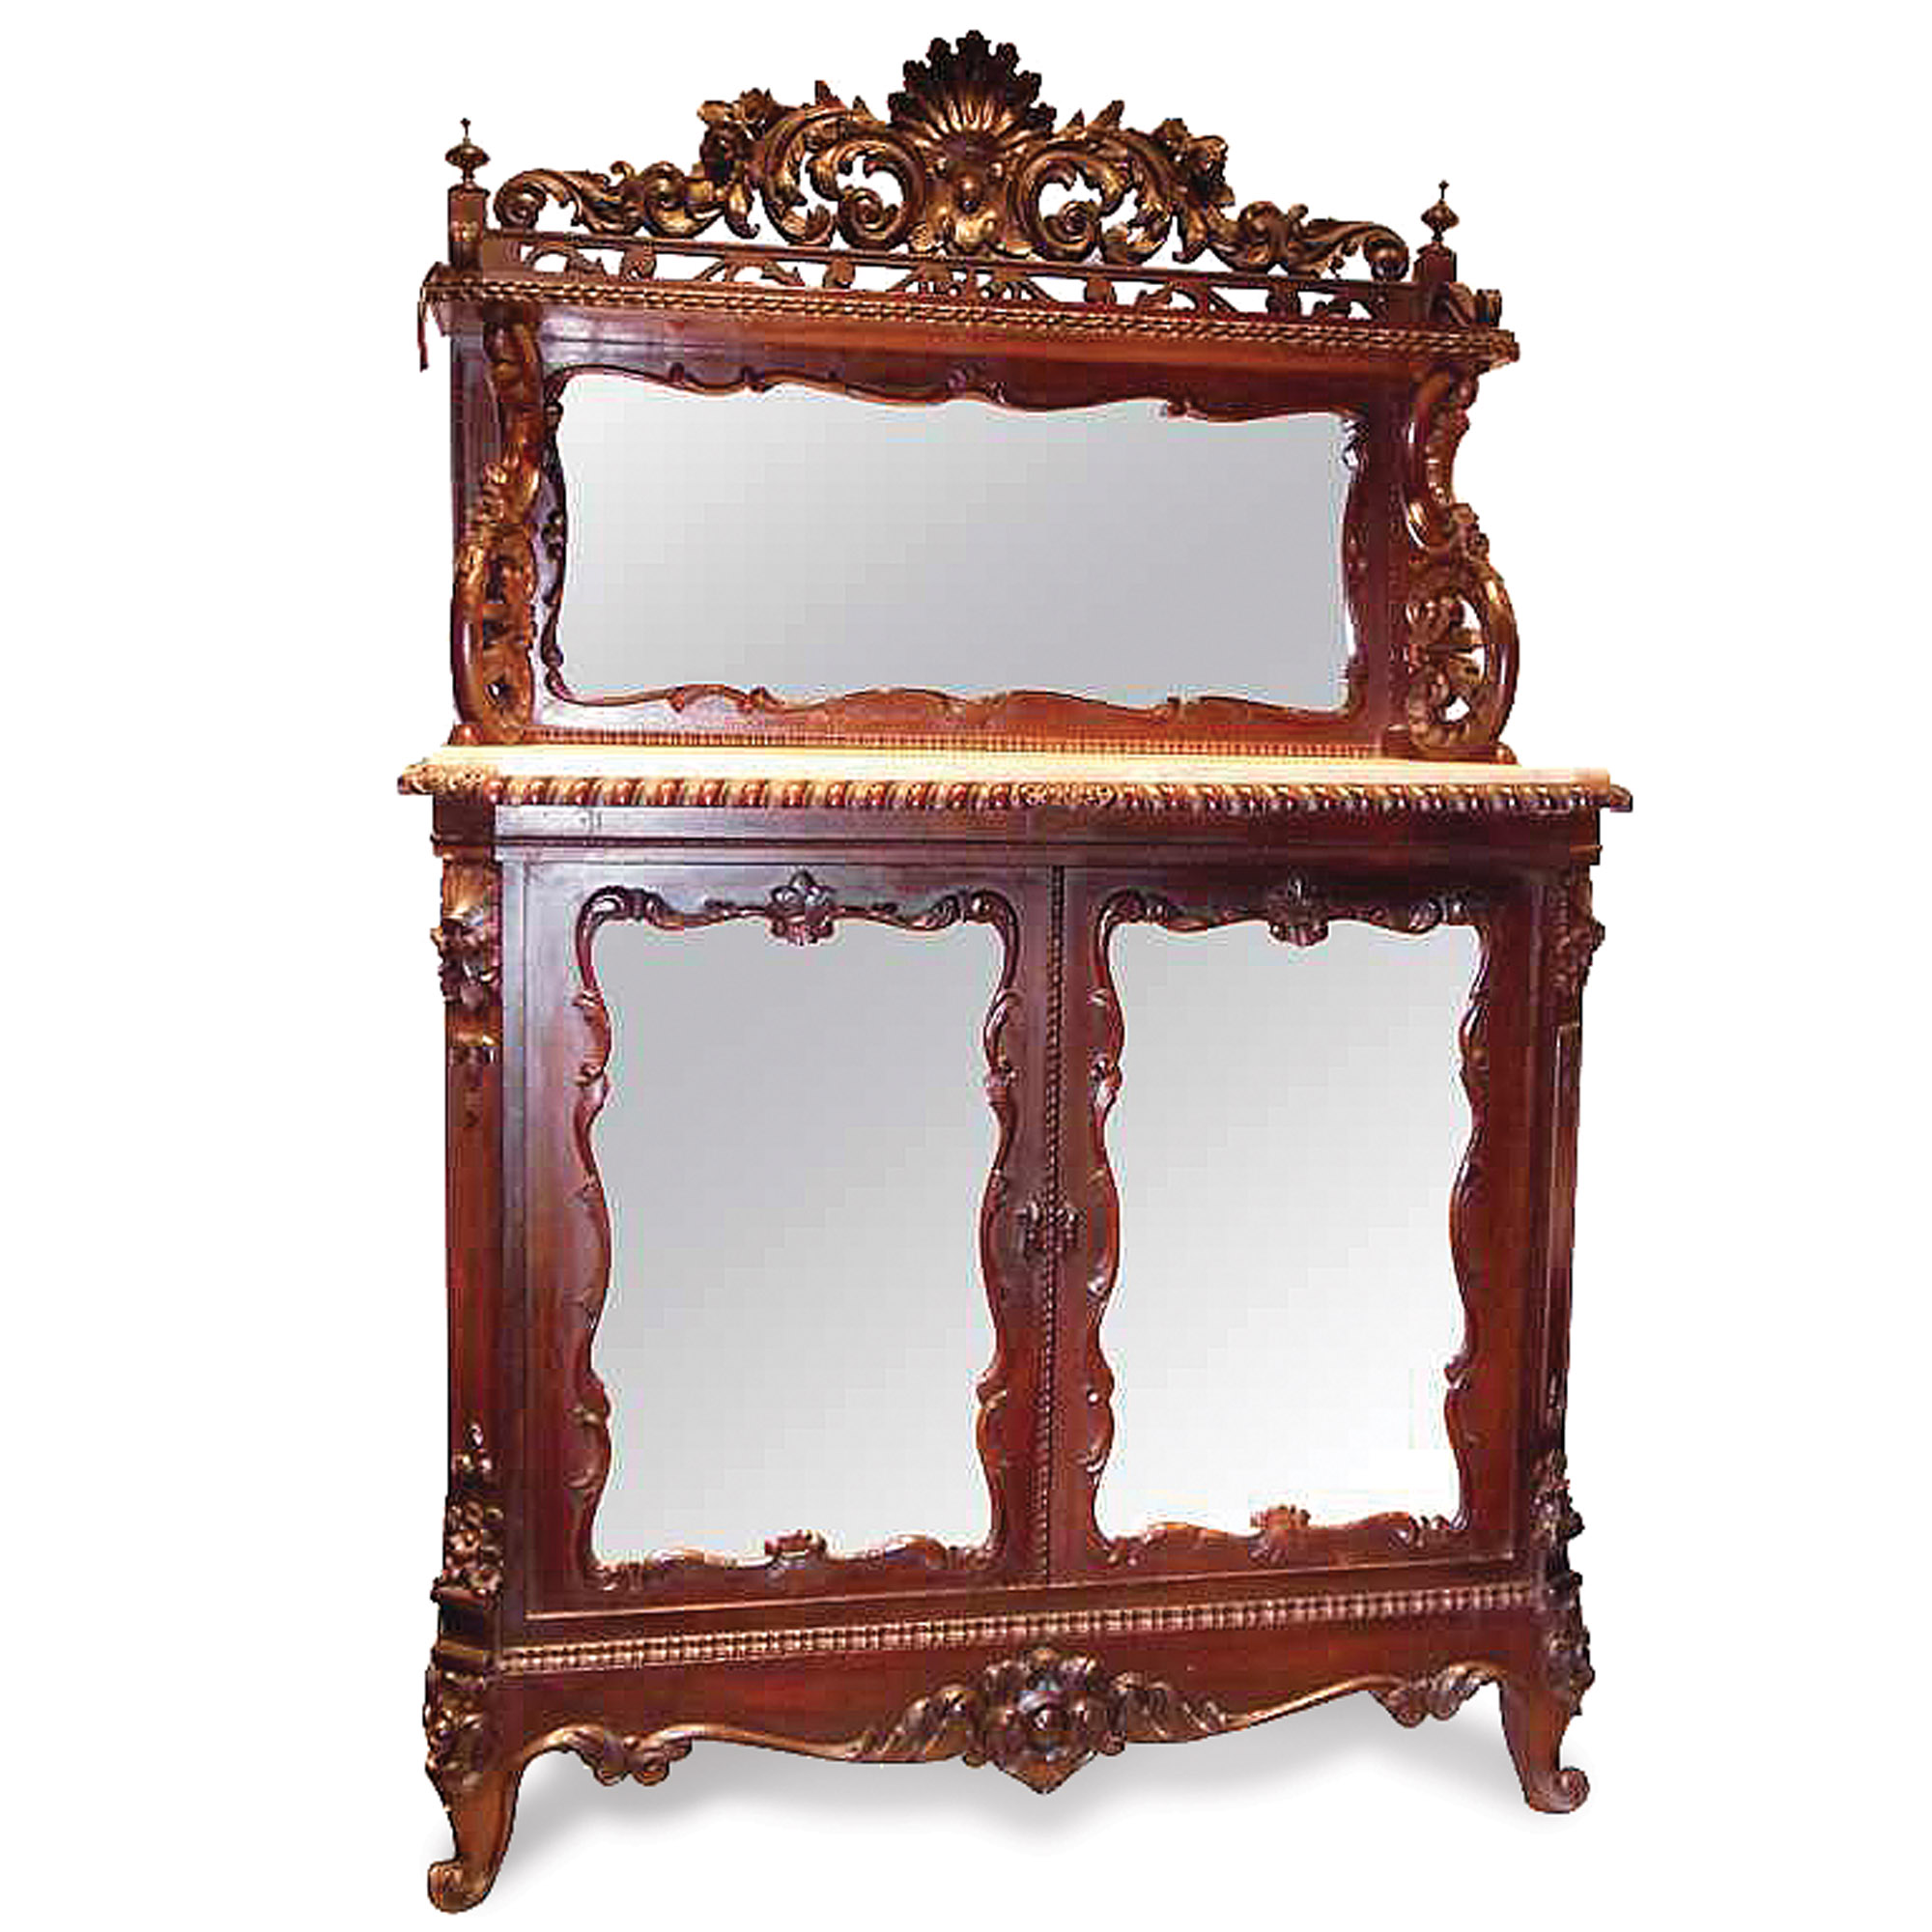 Marble-top rosewood cabinet